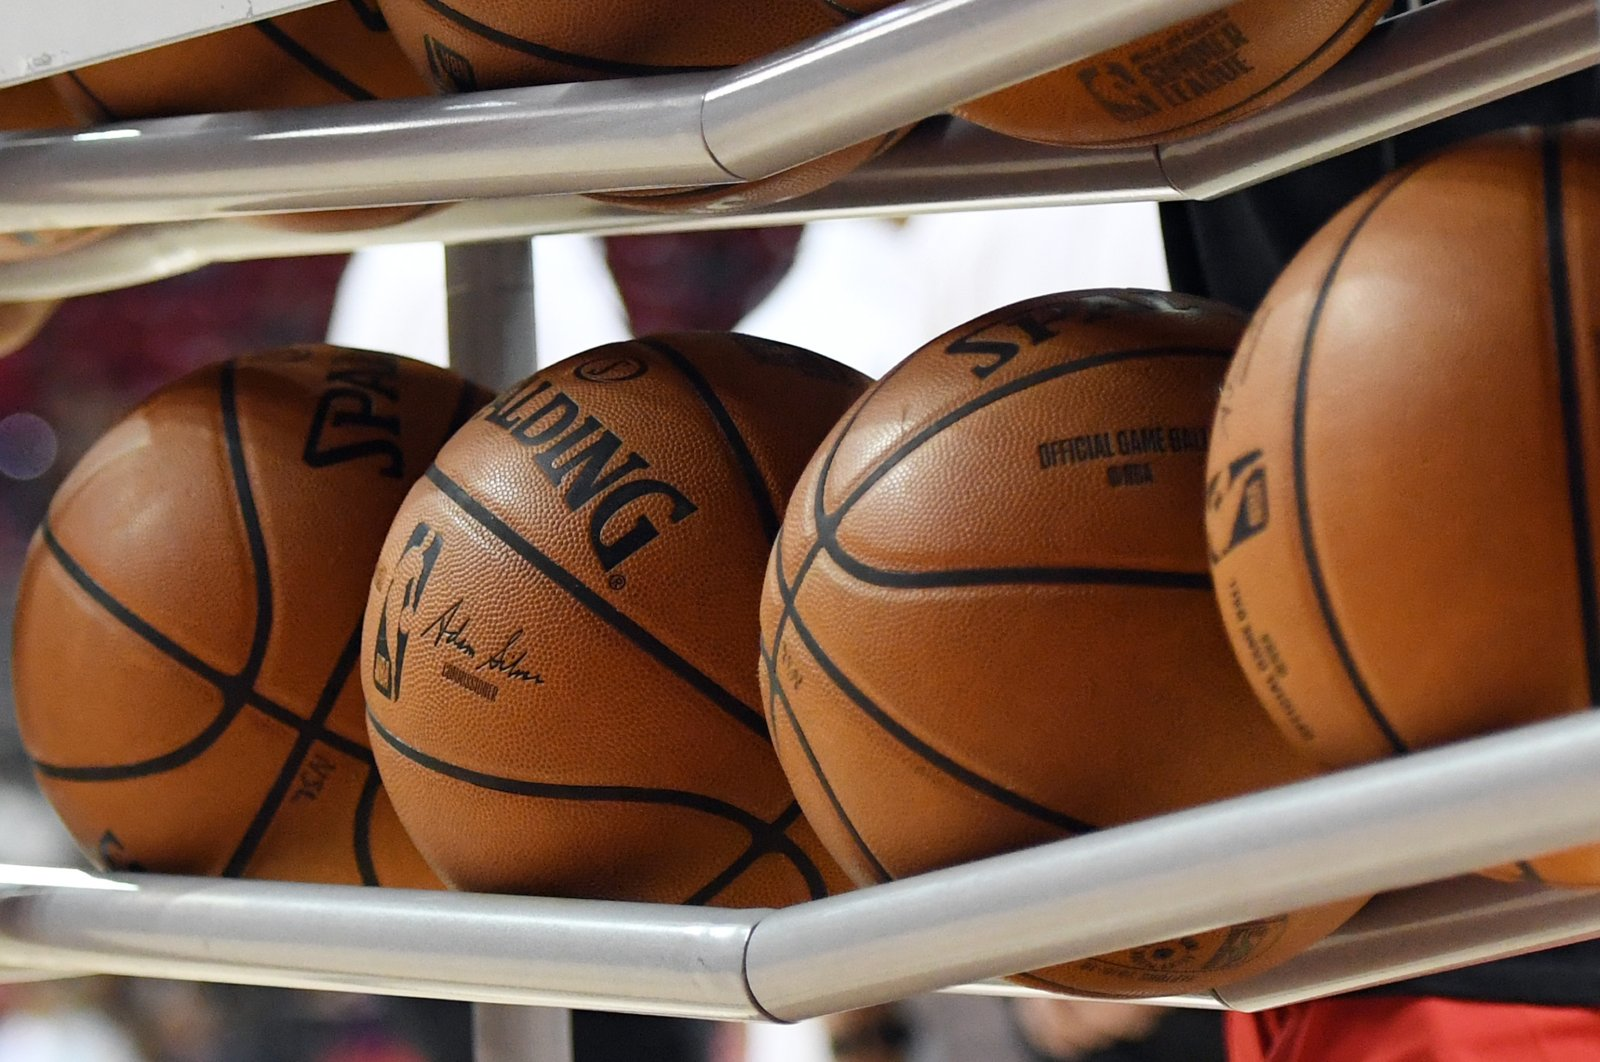 Basketballs lay in a ball rack before a game between the Washington Wizards and the New Orleans Pelicans during the 2019 NBA Summer League at the Thomas & Mack Center in Las Vegas, Nevada, U.S., July 5, 2019. (AFP Photo)